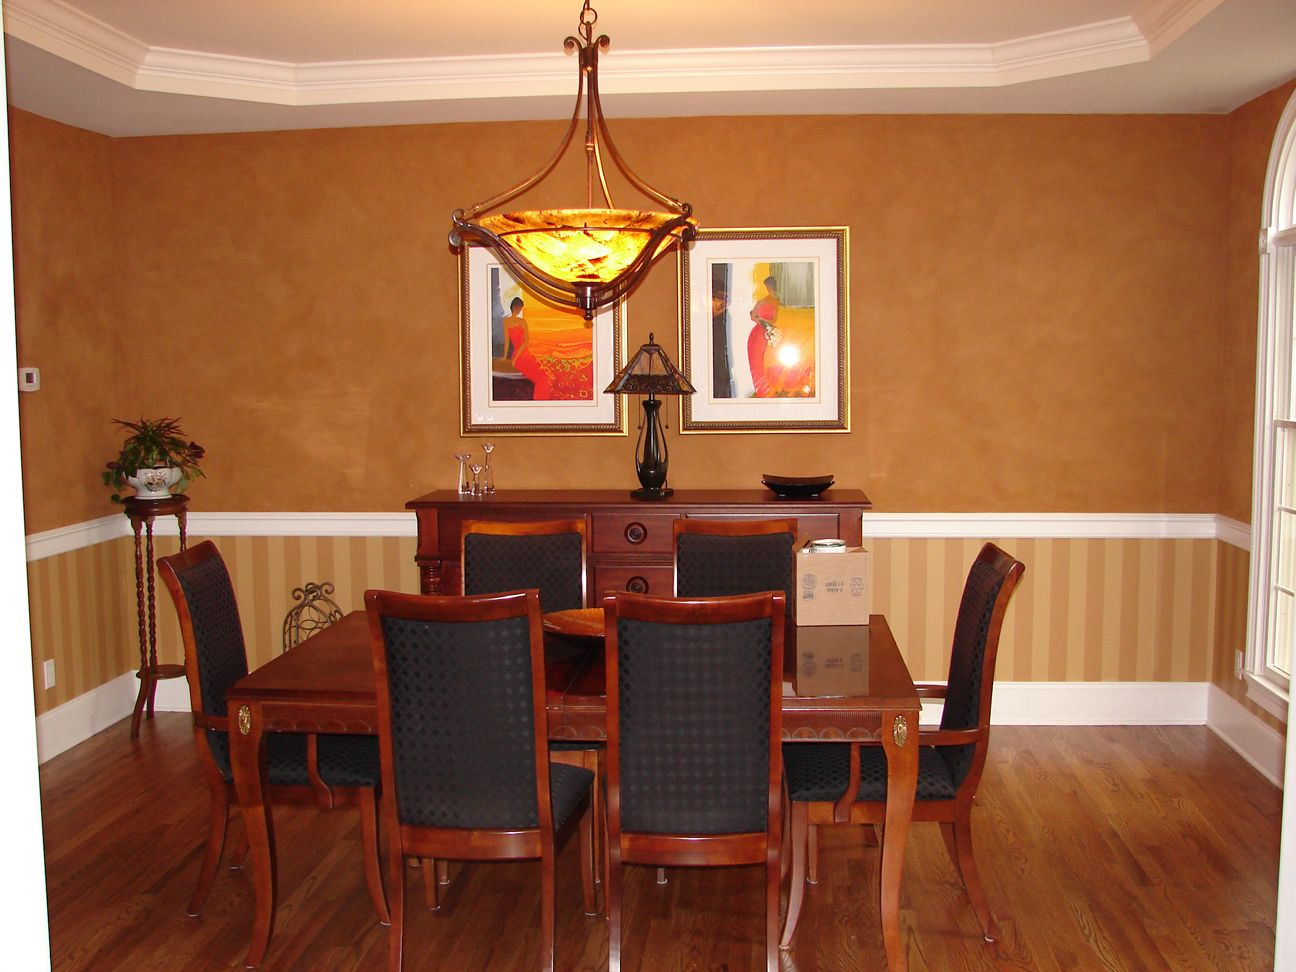 Dining Room Painting With Chair Rail Decorative Desk Designs On Walls Ideas